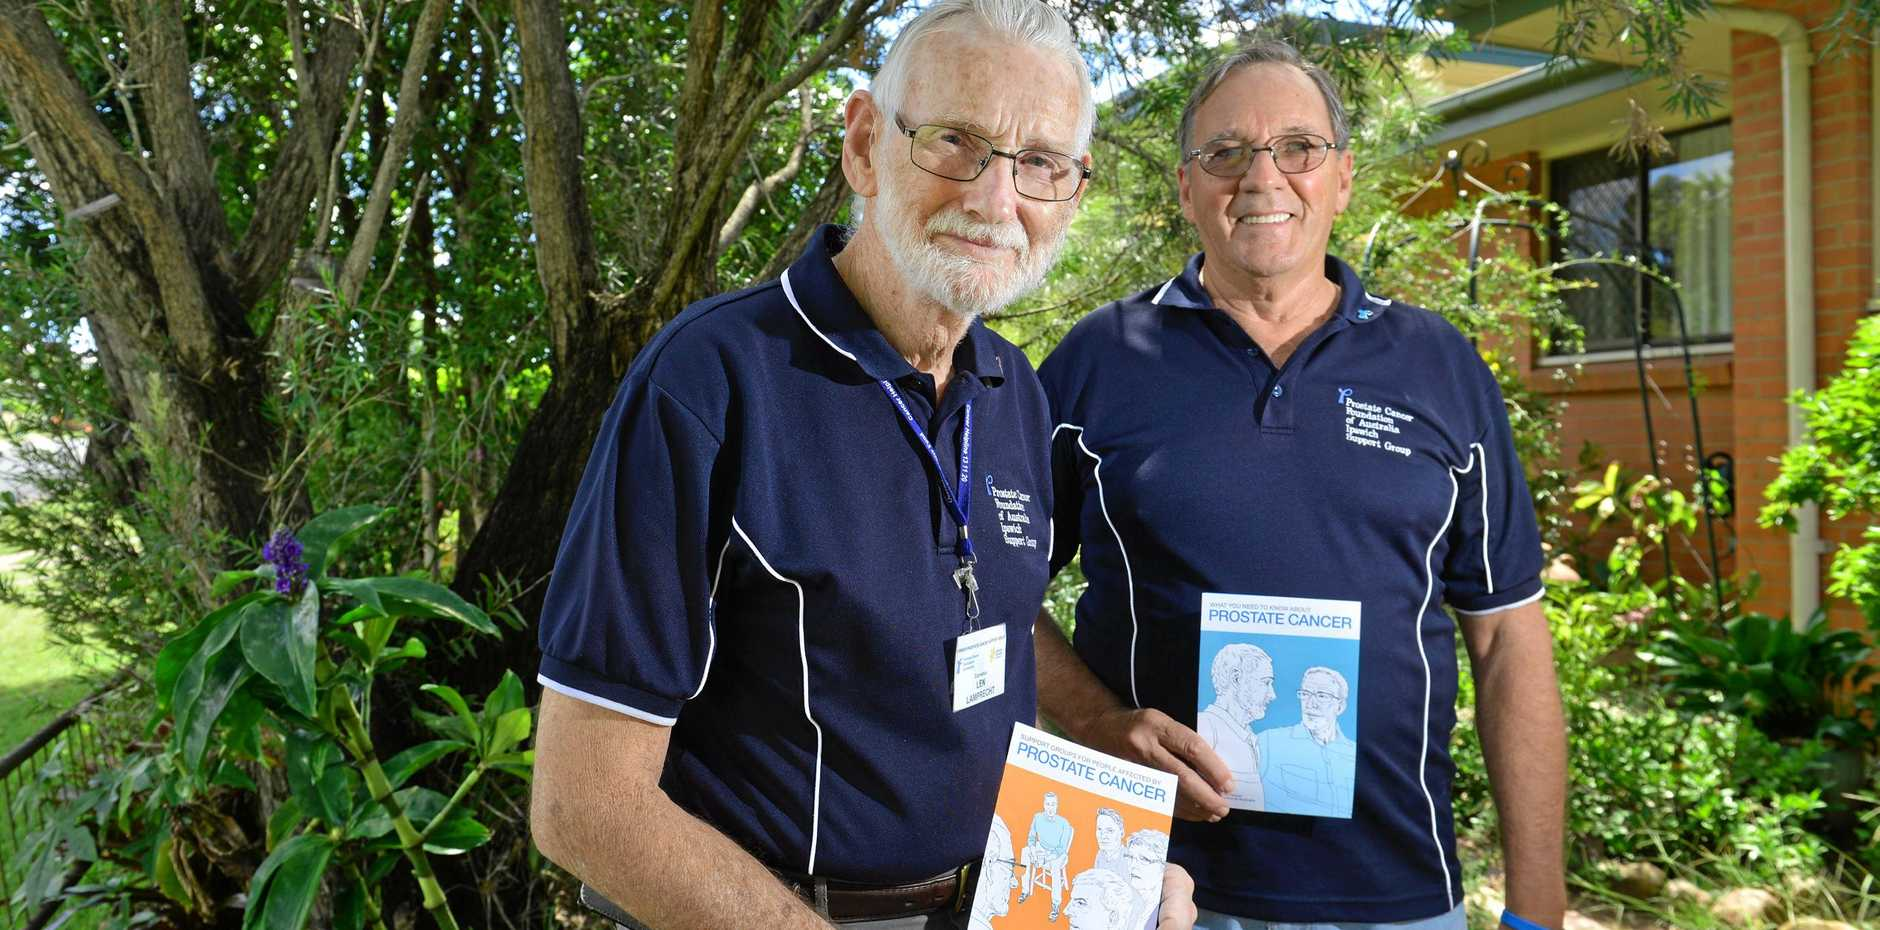 JOIN THEM: Len Lamprecht and Dennis Ellis from the Prostate Cancer Foundation of Australia Ipswich Support Group. They are looking for new members to join the group.